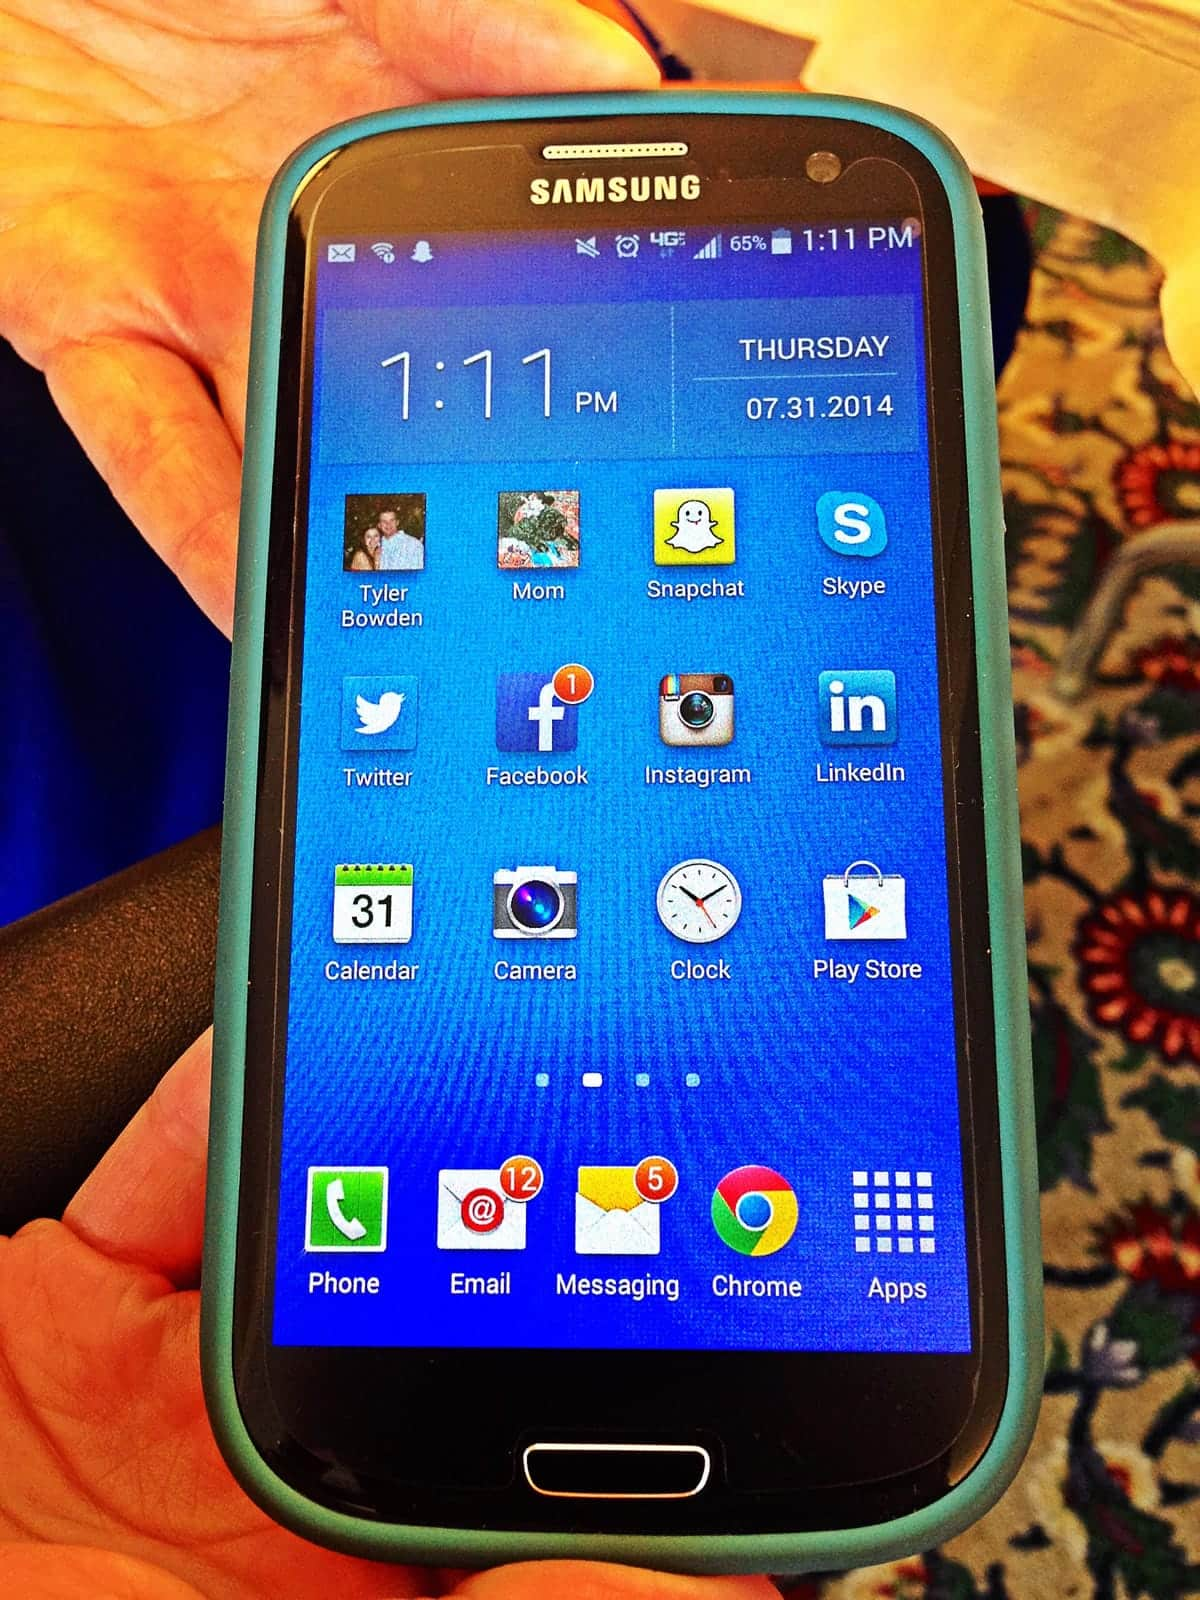 A photo of a person holding a Samsung smartphone displaying the home screen.